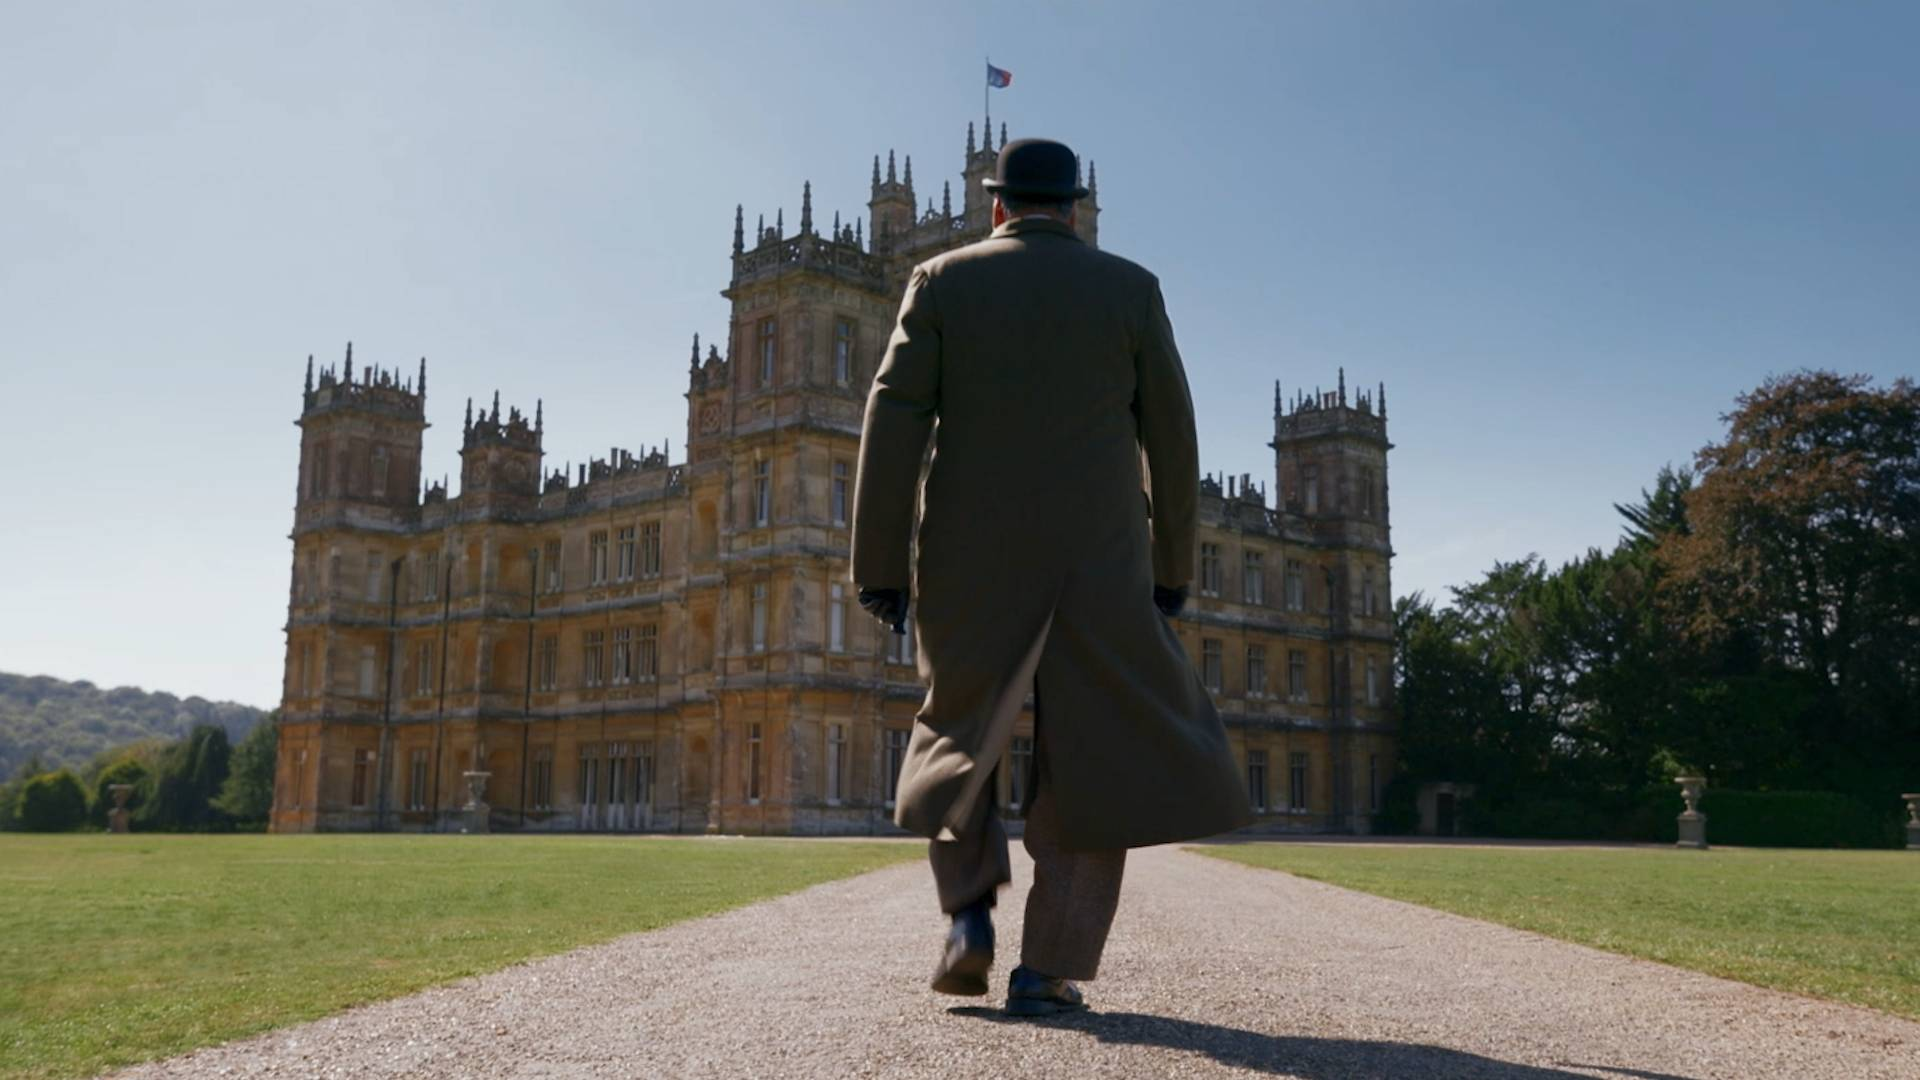 Downton Abbey Movie Review: How Does It Compare To The TV Series?